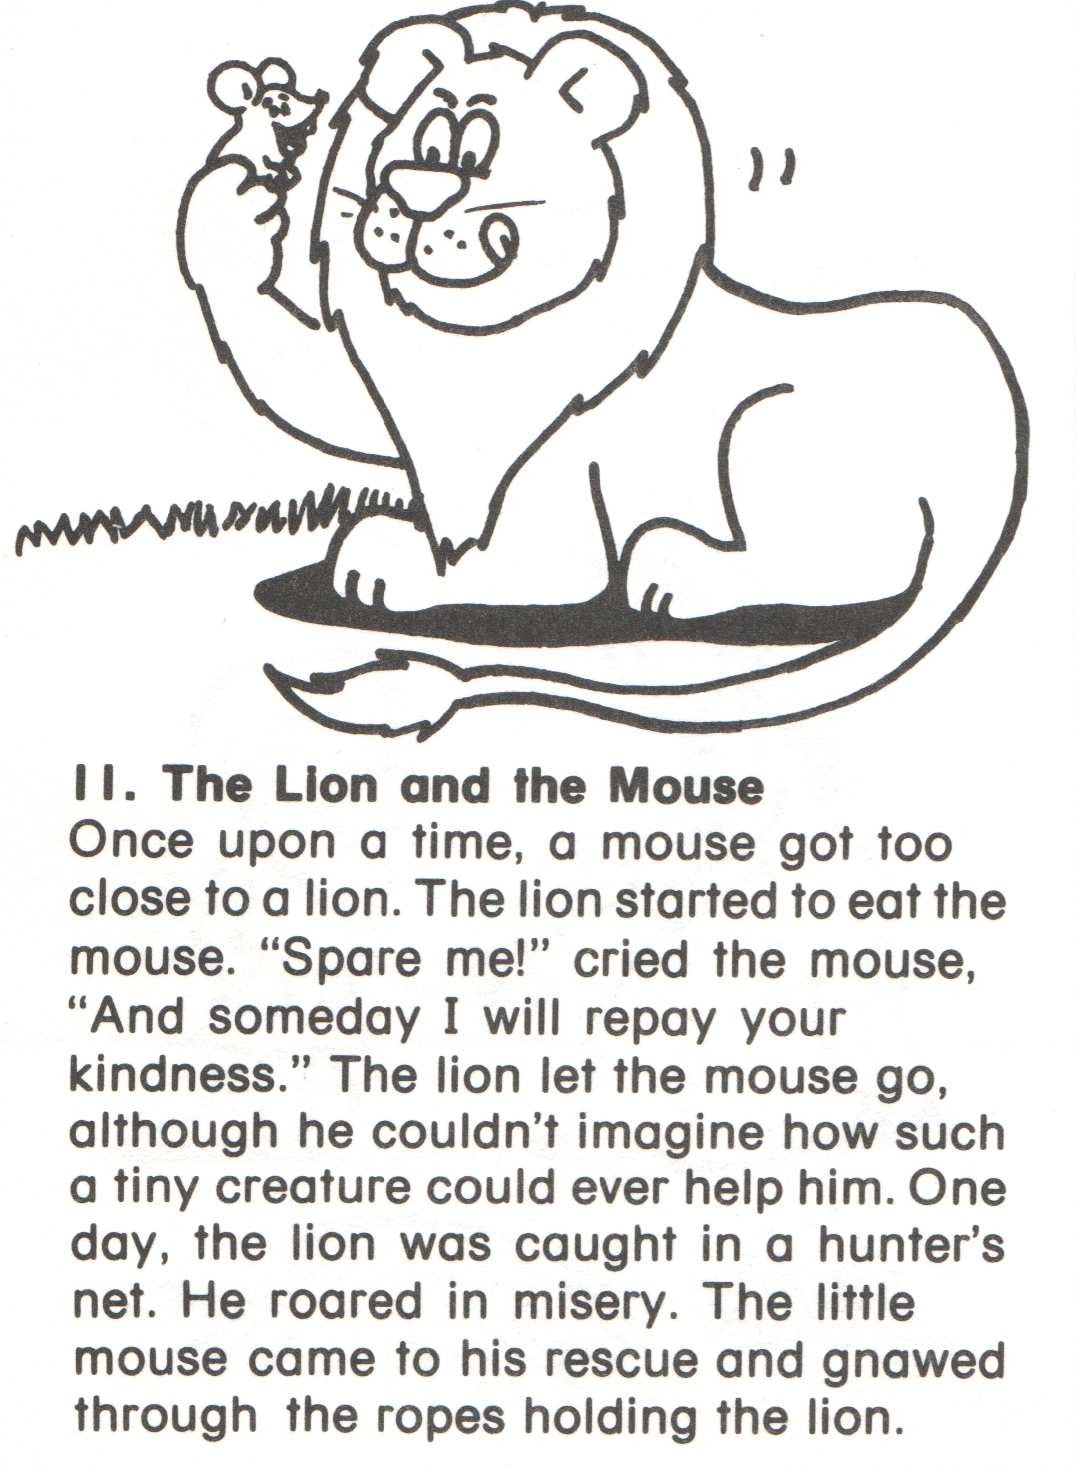 Worksheets Kindergarten Story 11 lion and mouse story kindergarten nana fairy tales story